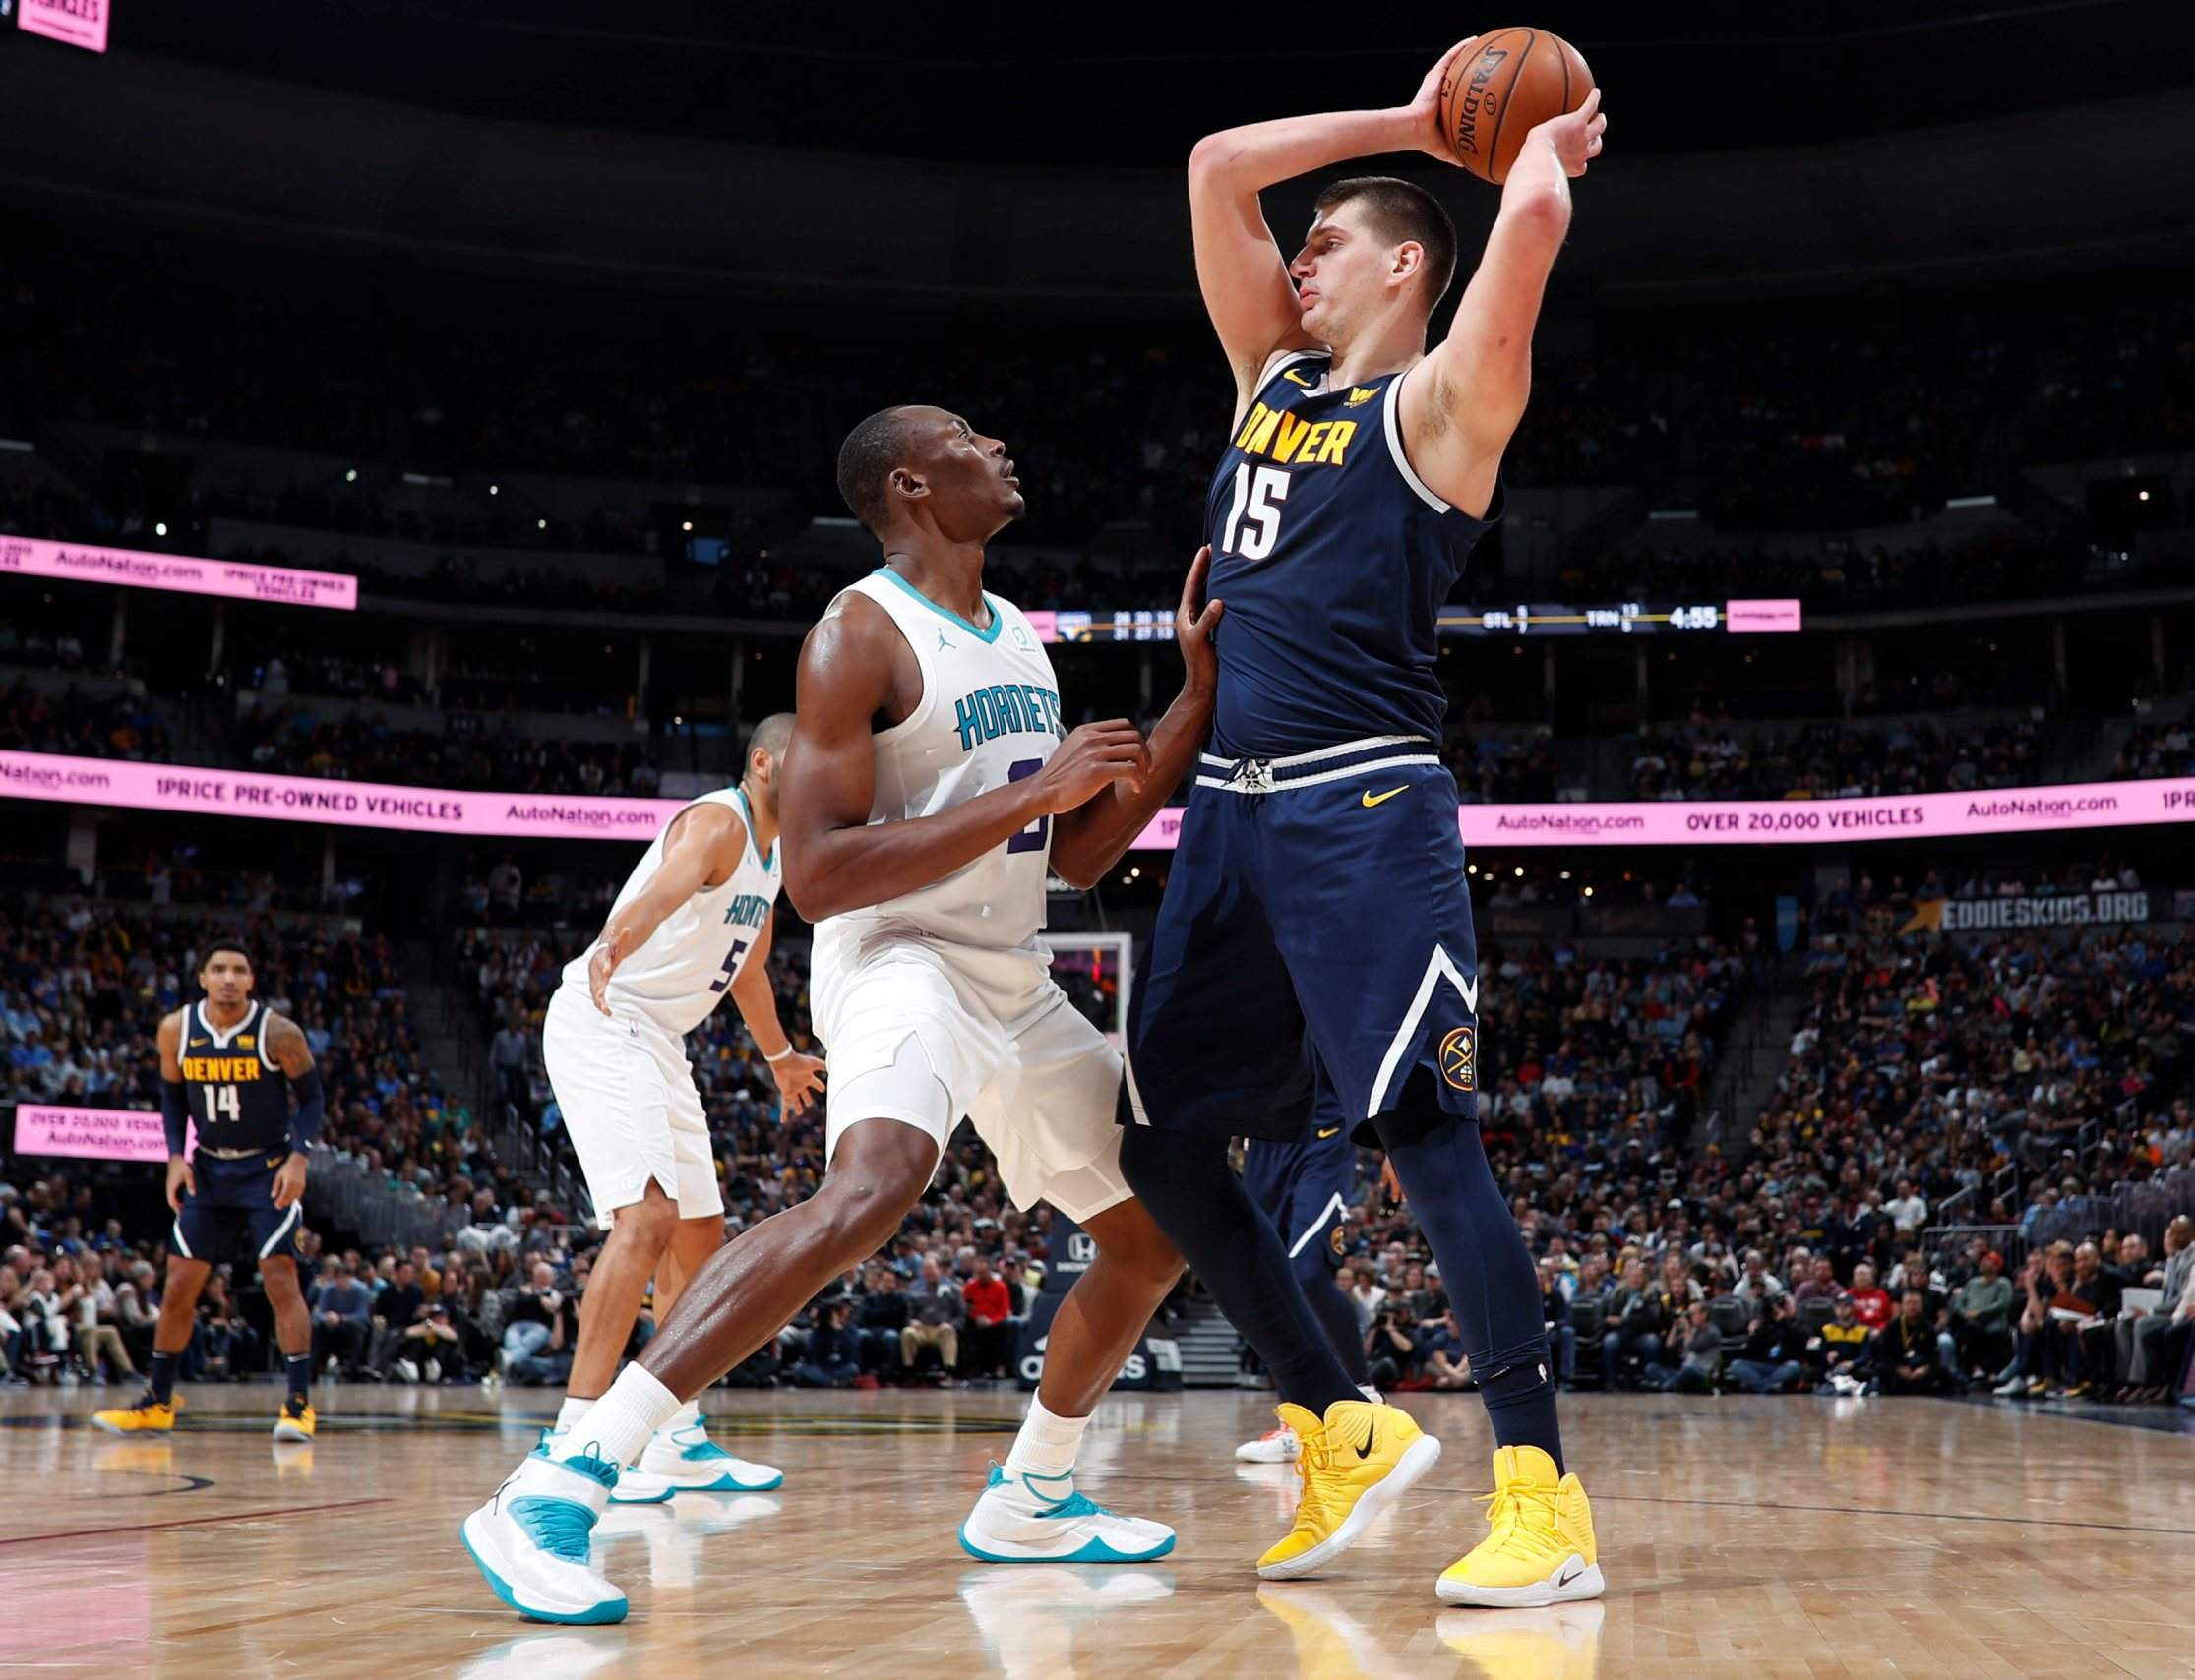 82355b05b Denver Nuggets center Nikola Jokic looks to pass the ball as Charlotte  Hornets center Bismack Biyombo defends in the second half Saturday in Denver .